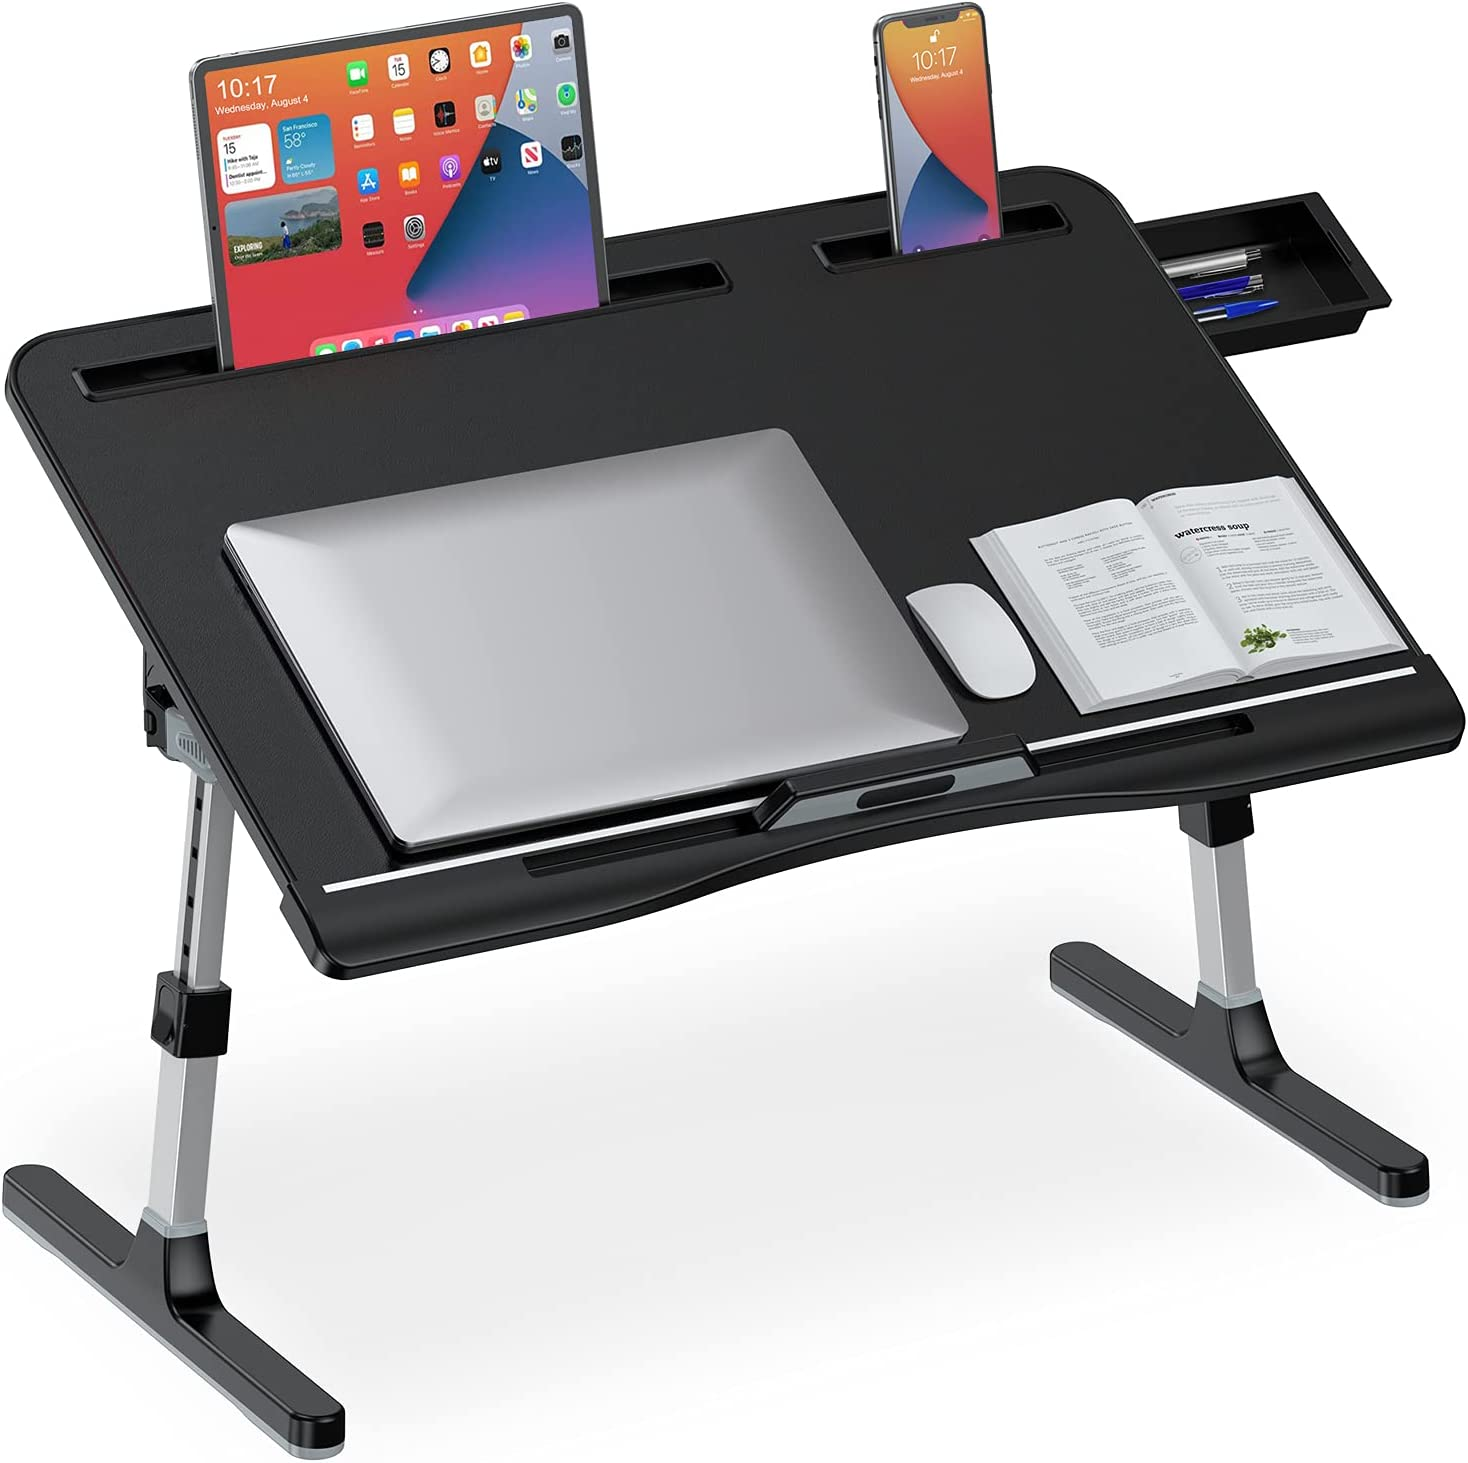 Laptop Desk for Bed Adjustable Max 63% OFF Foldable Legs with Stor Indianapolis Mall